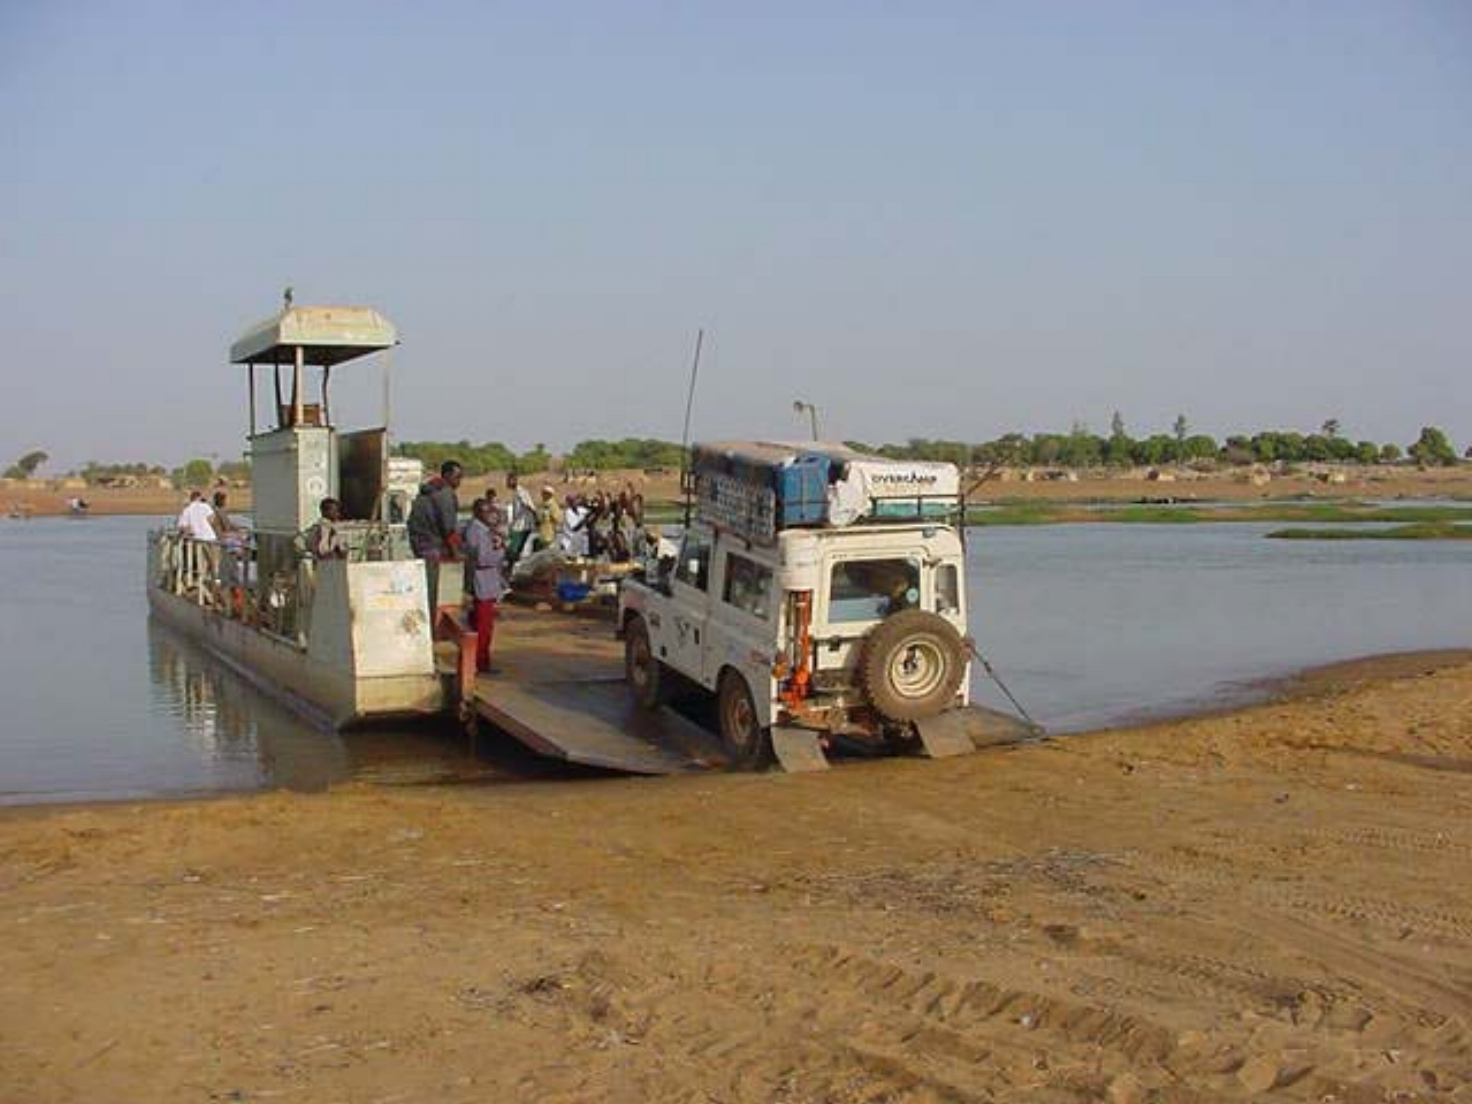 The Bani River ferry